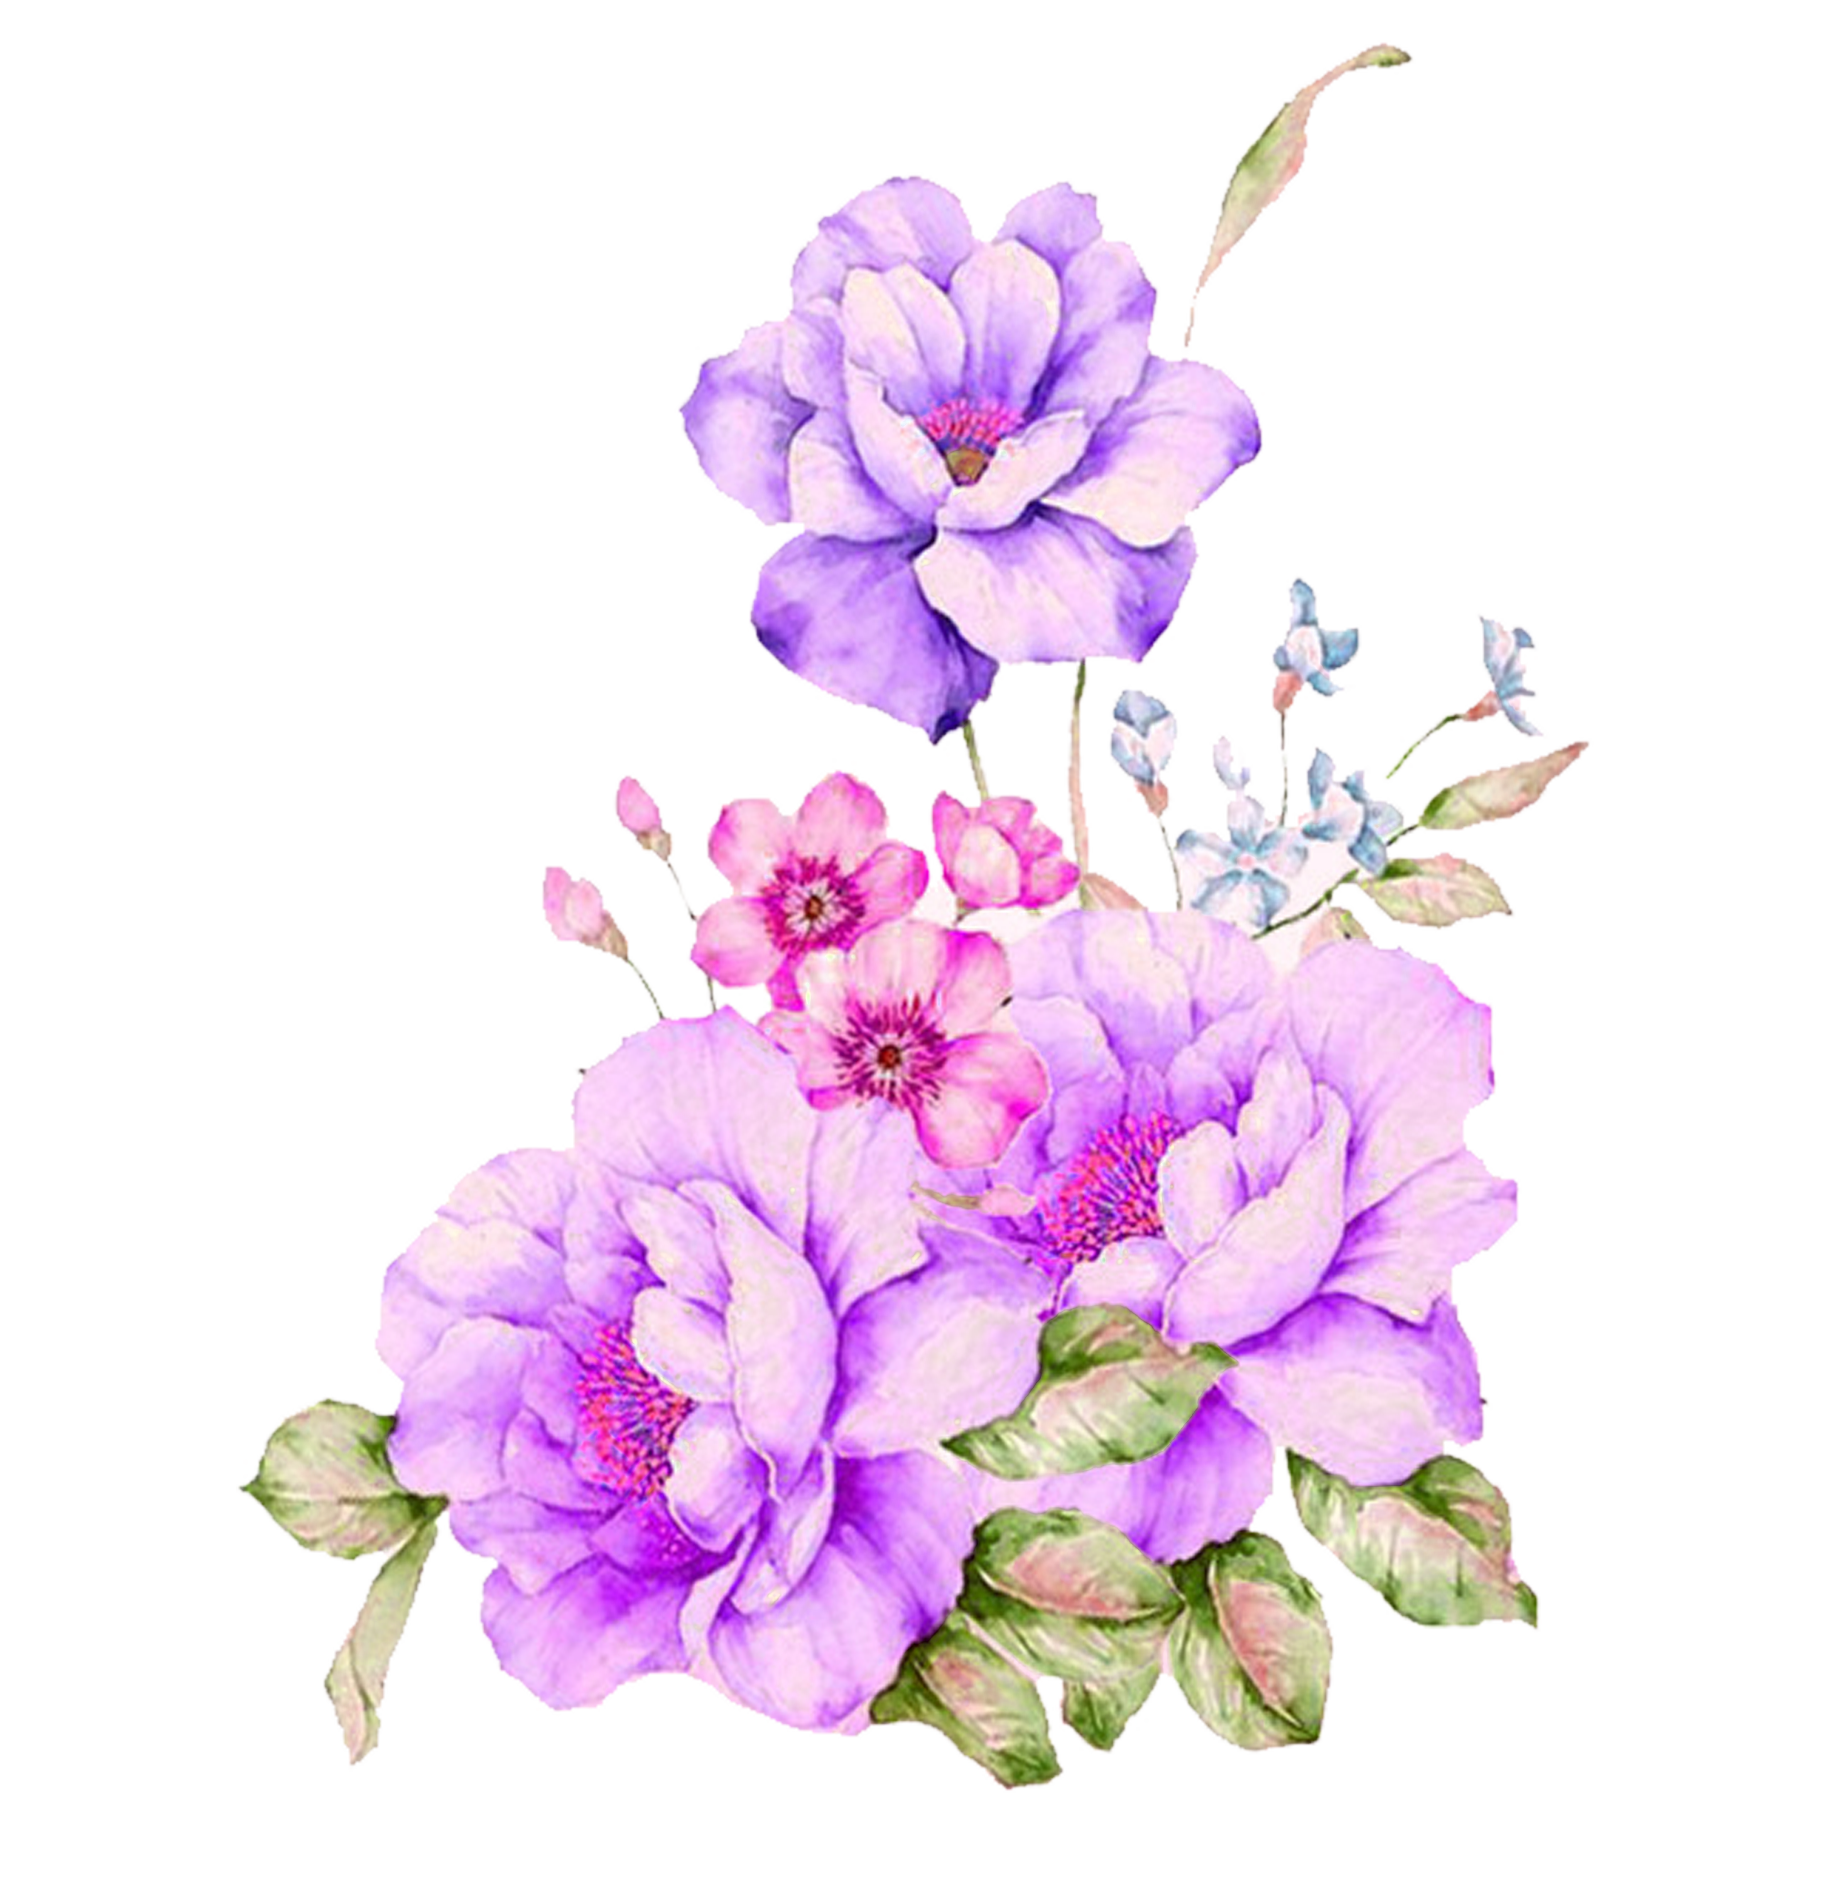 Plant Flower Watercolour Watercolor Flowers Painting PNG Image